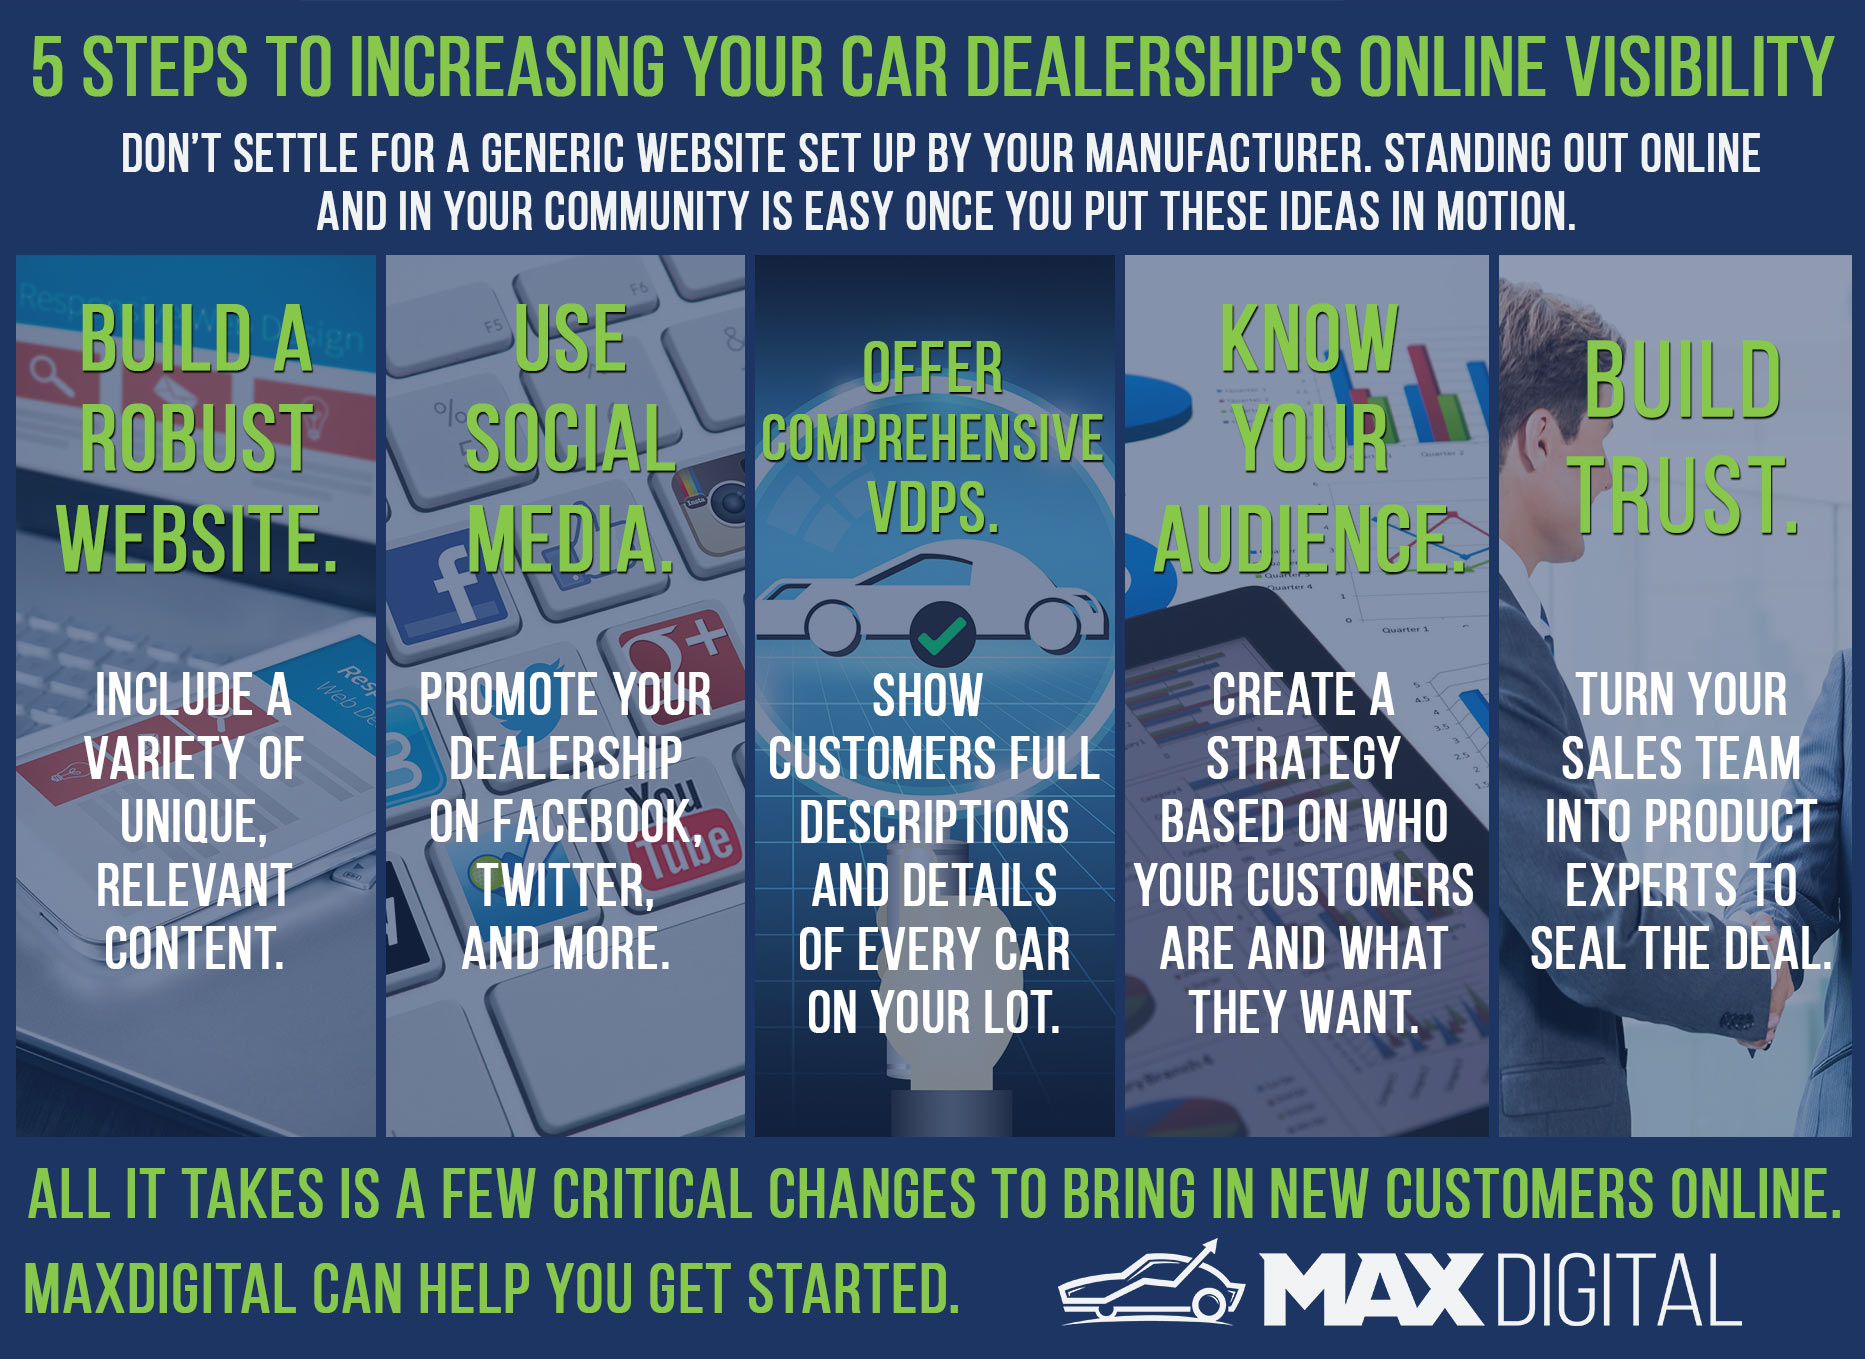 5 Steps to Increasing Your Car Dealership's Online Visibility